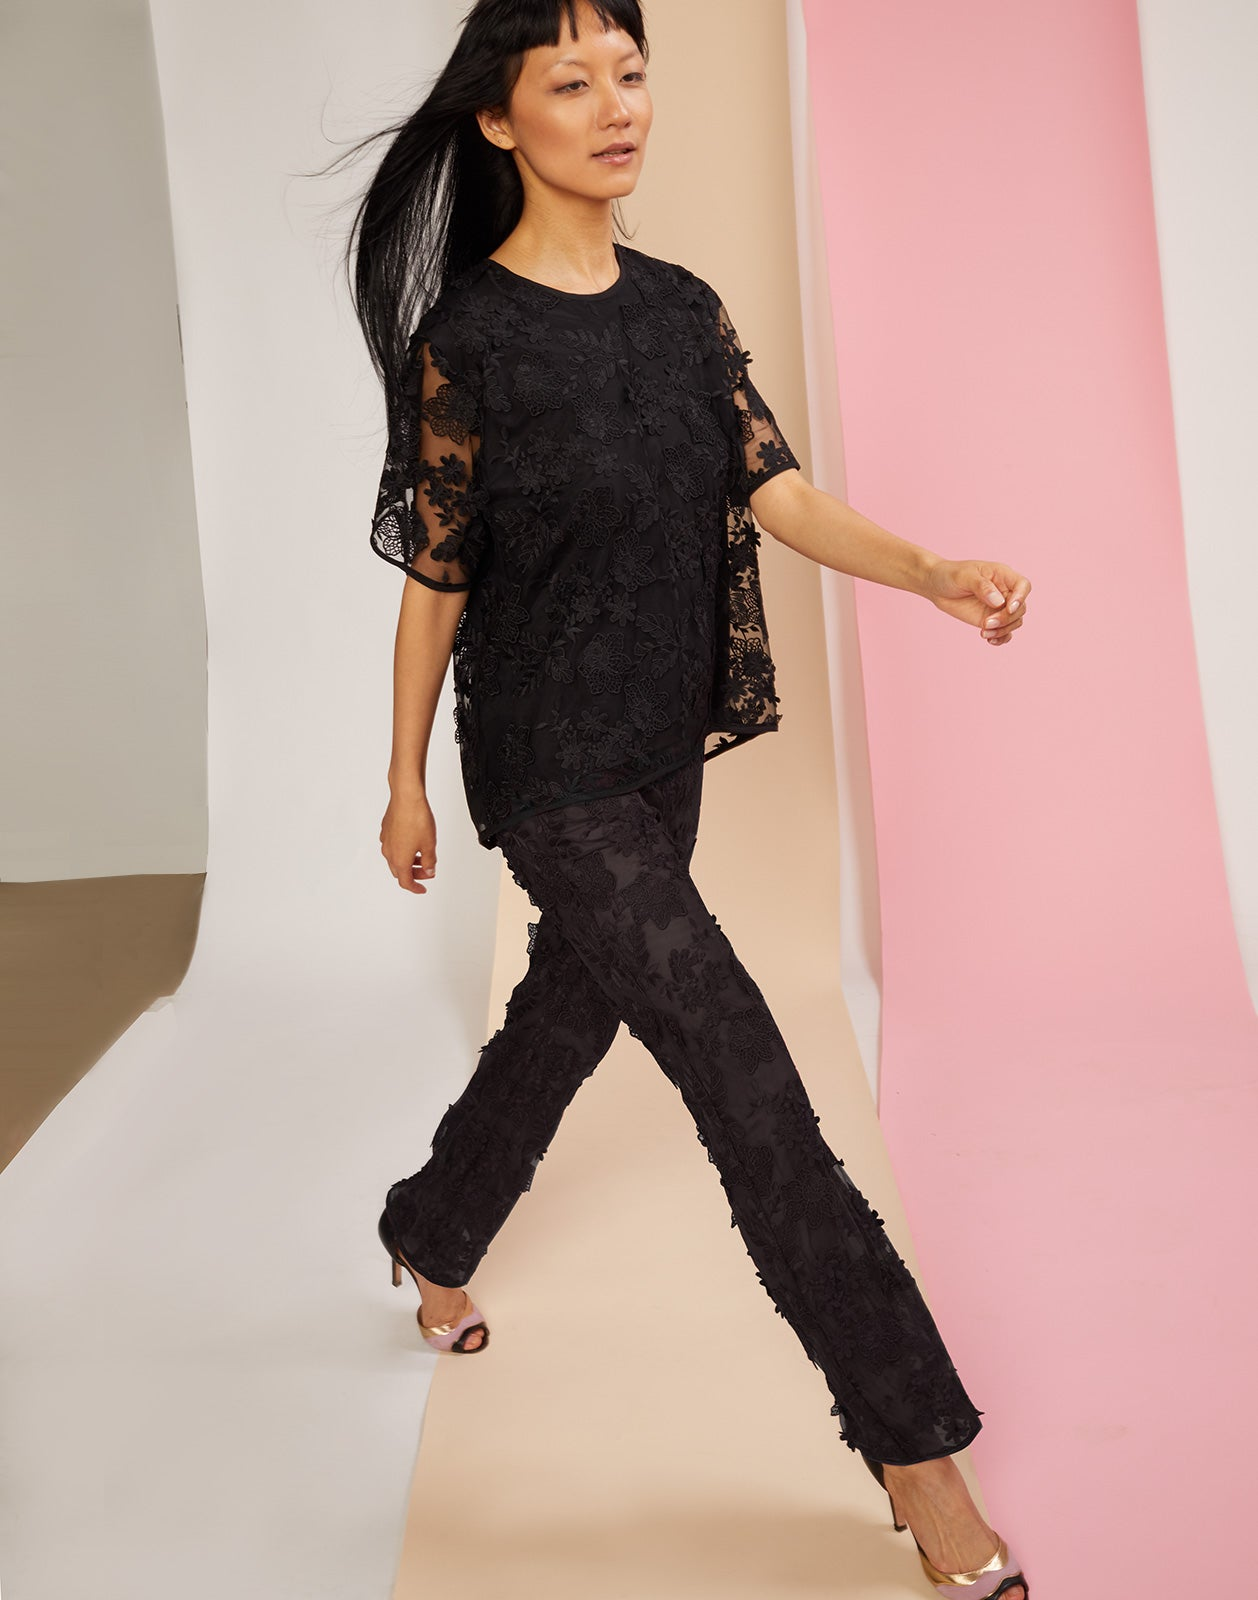 Model walking in the black Crossfade lace pant and tee set.